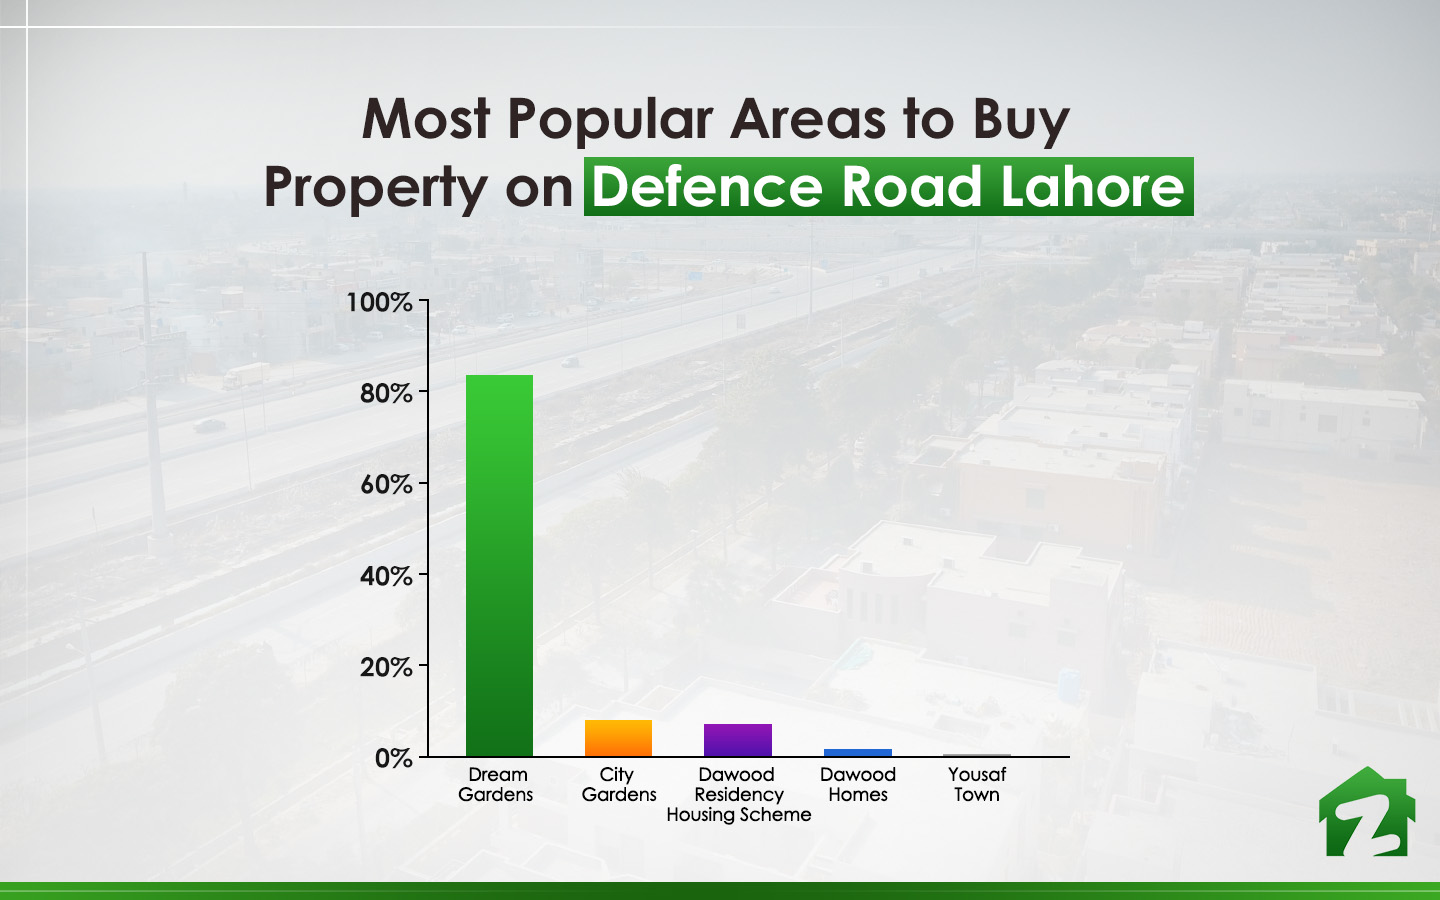 Popular Areas to Buy Property on Defence Road Lahore